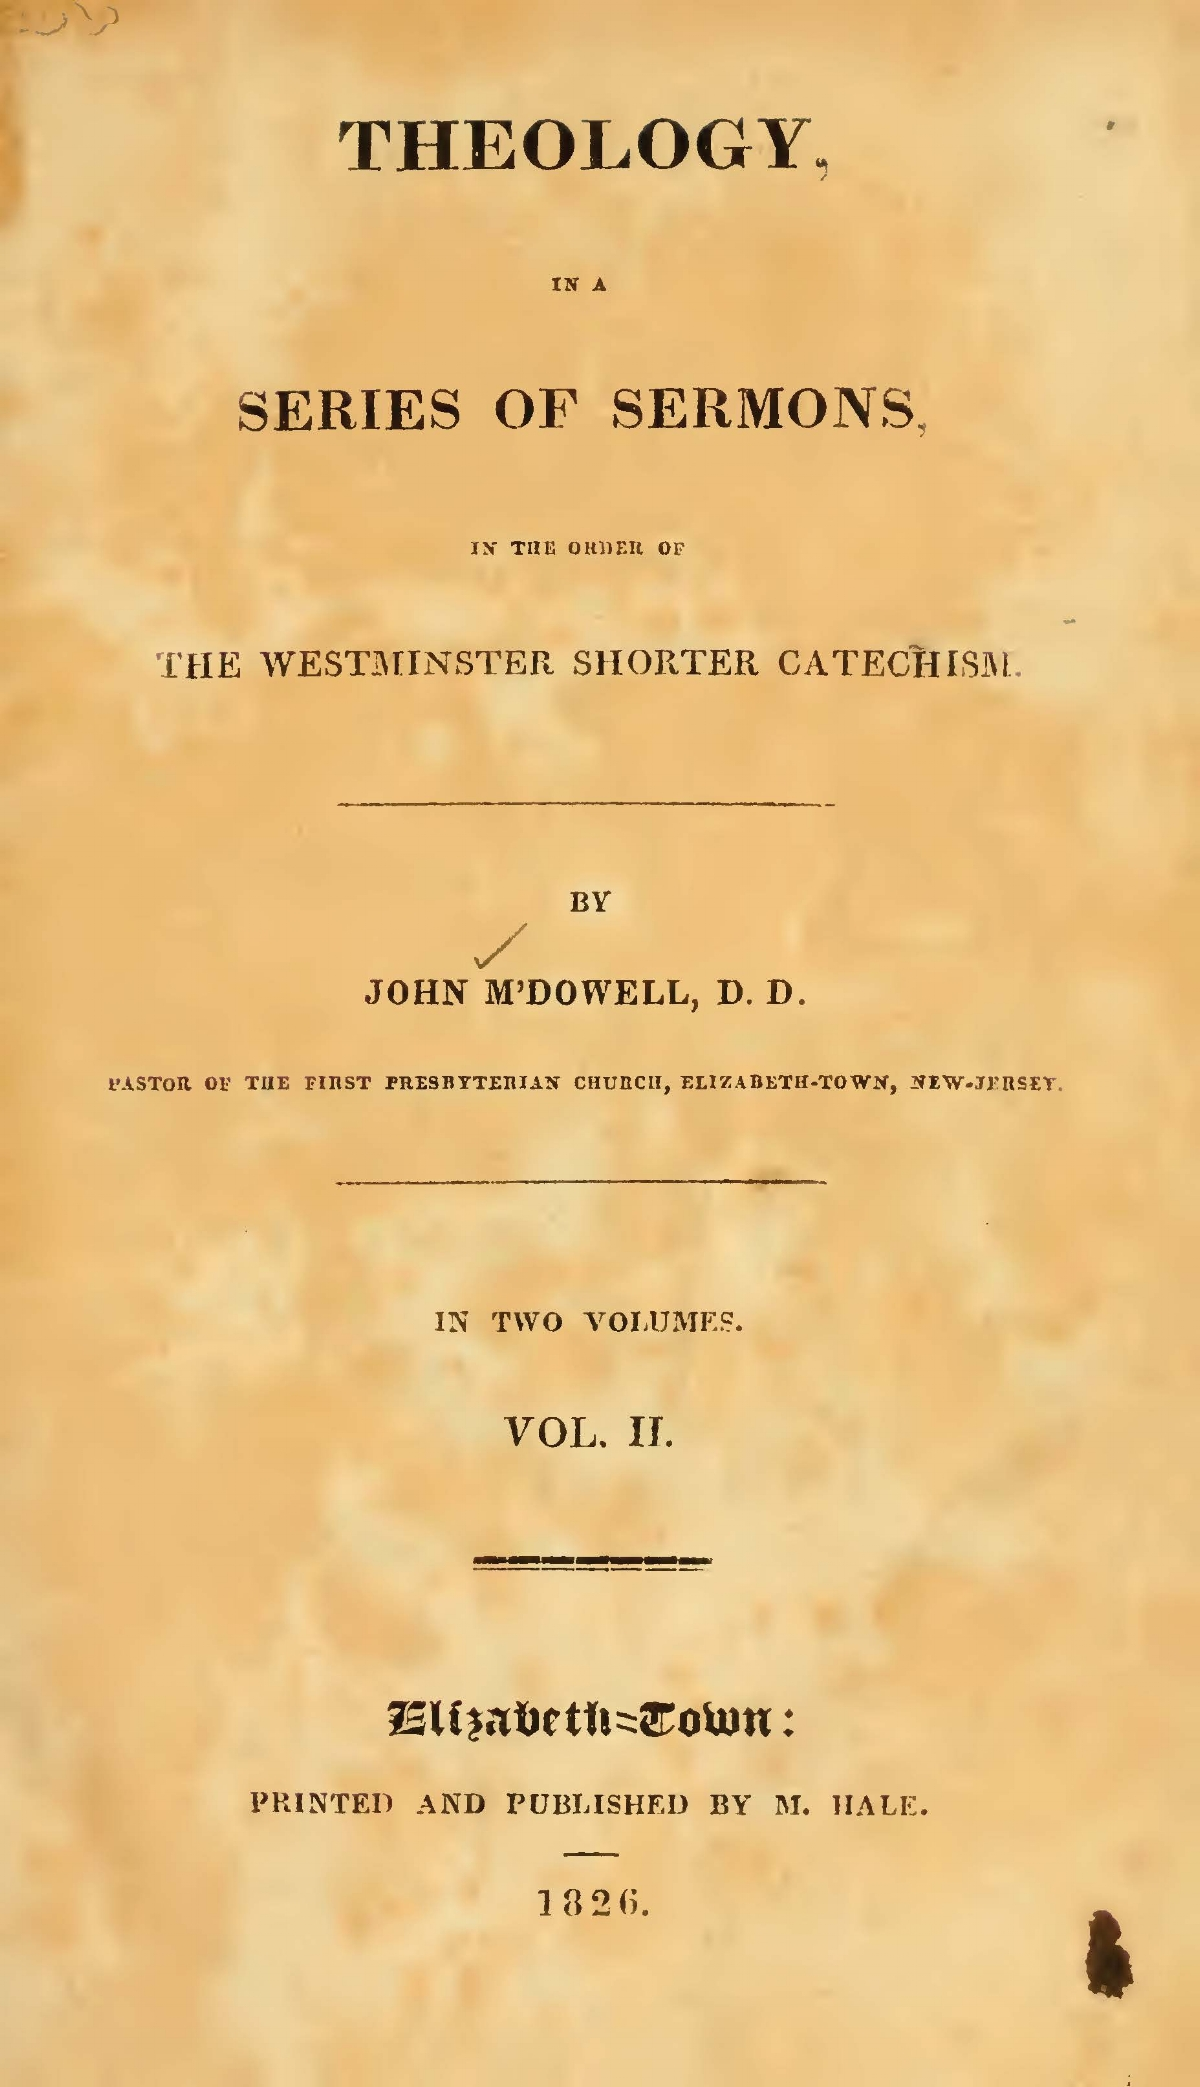 McDowell, John, Theology, in a Series of Sermons in the Order of the Westminster Shorter Catechism, Vol. 2 Title Page.jpg